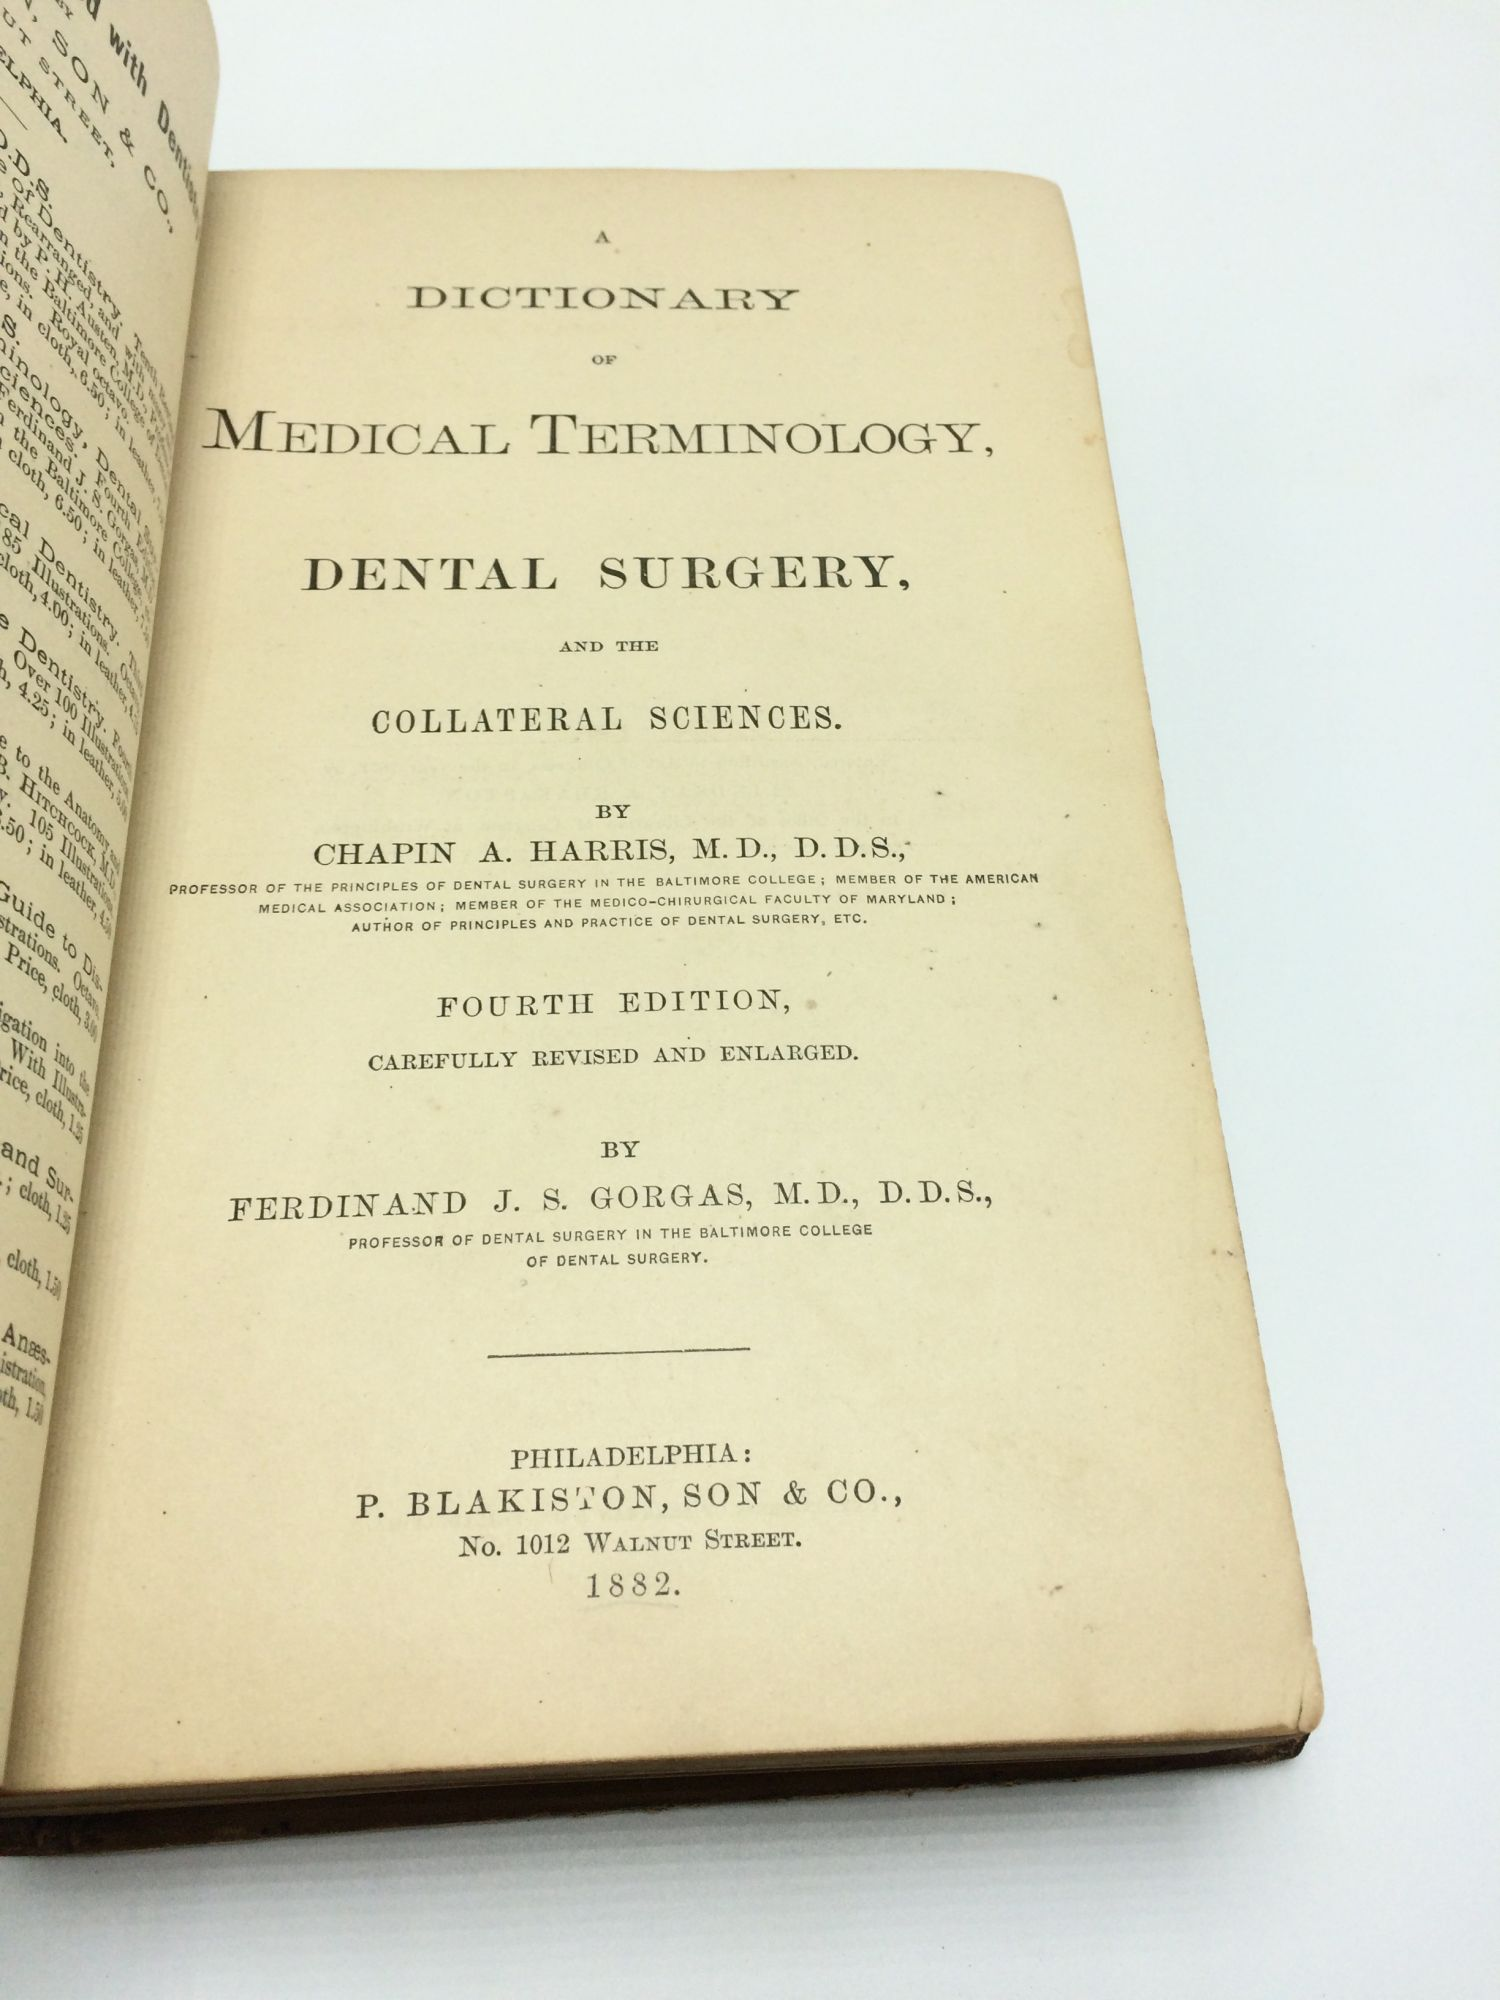 A dictionary of medical terminology, dental surgery, and the collateral sciences